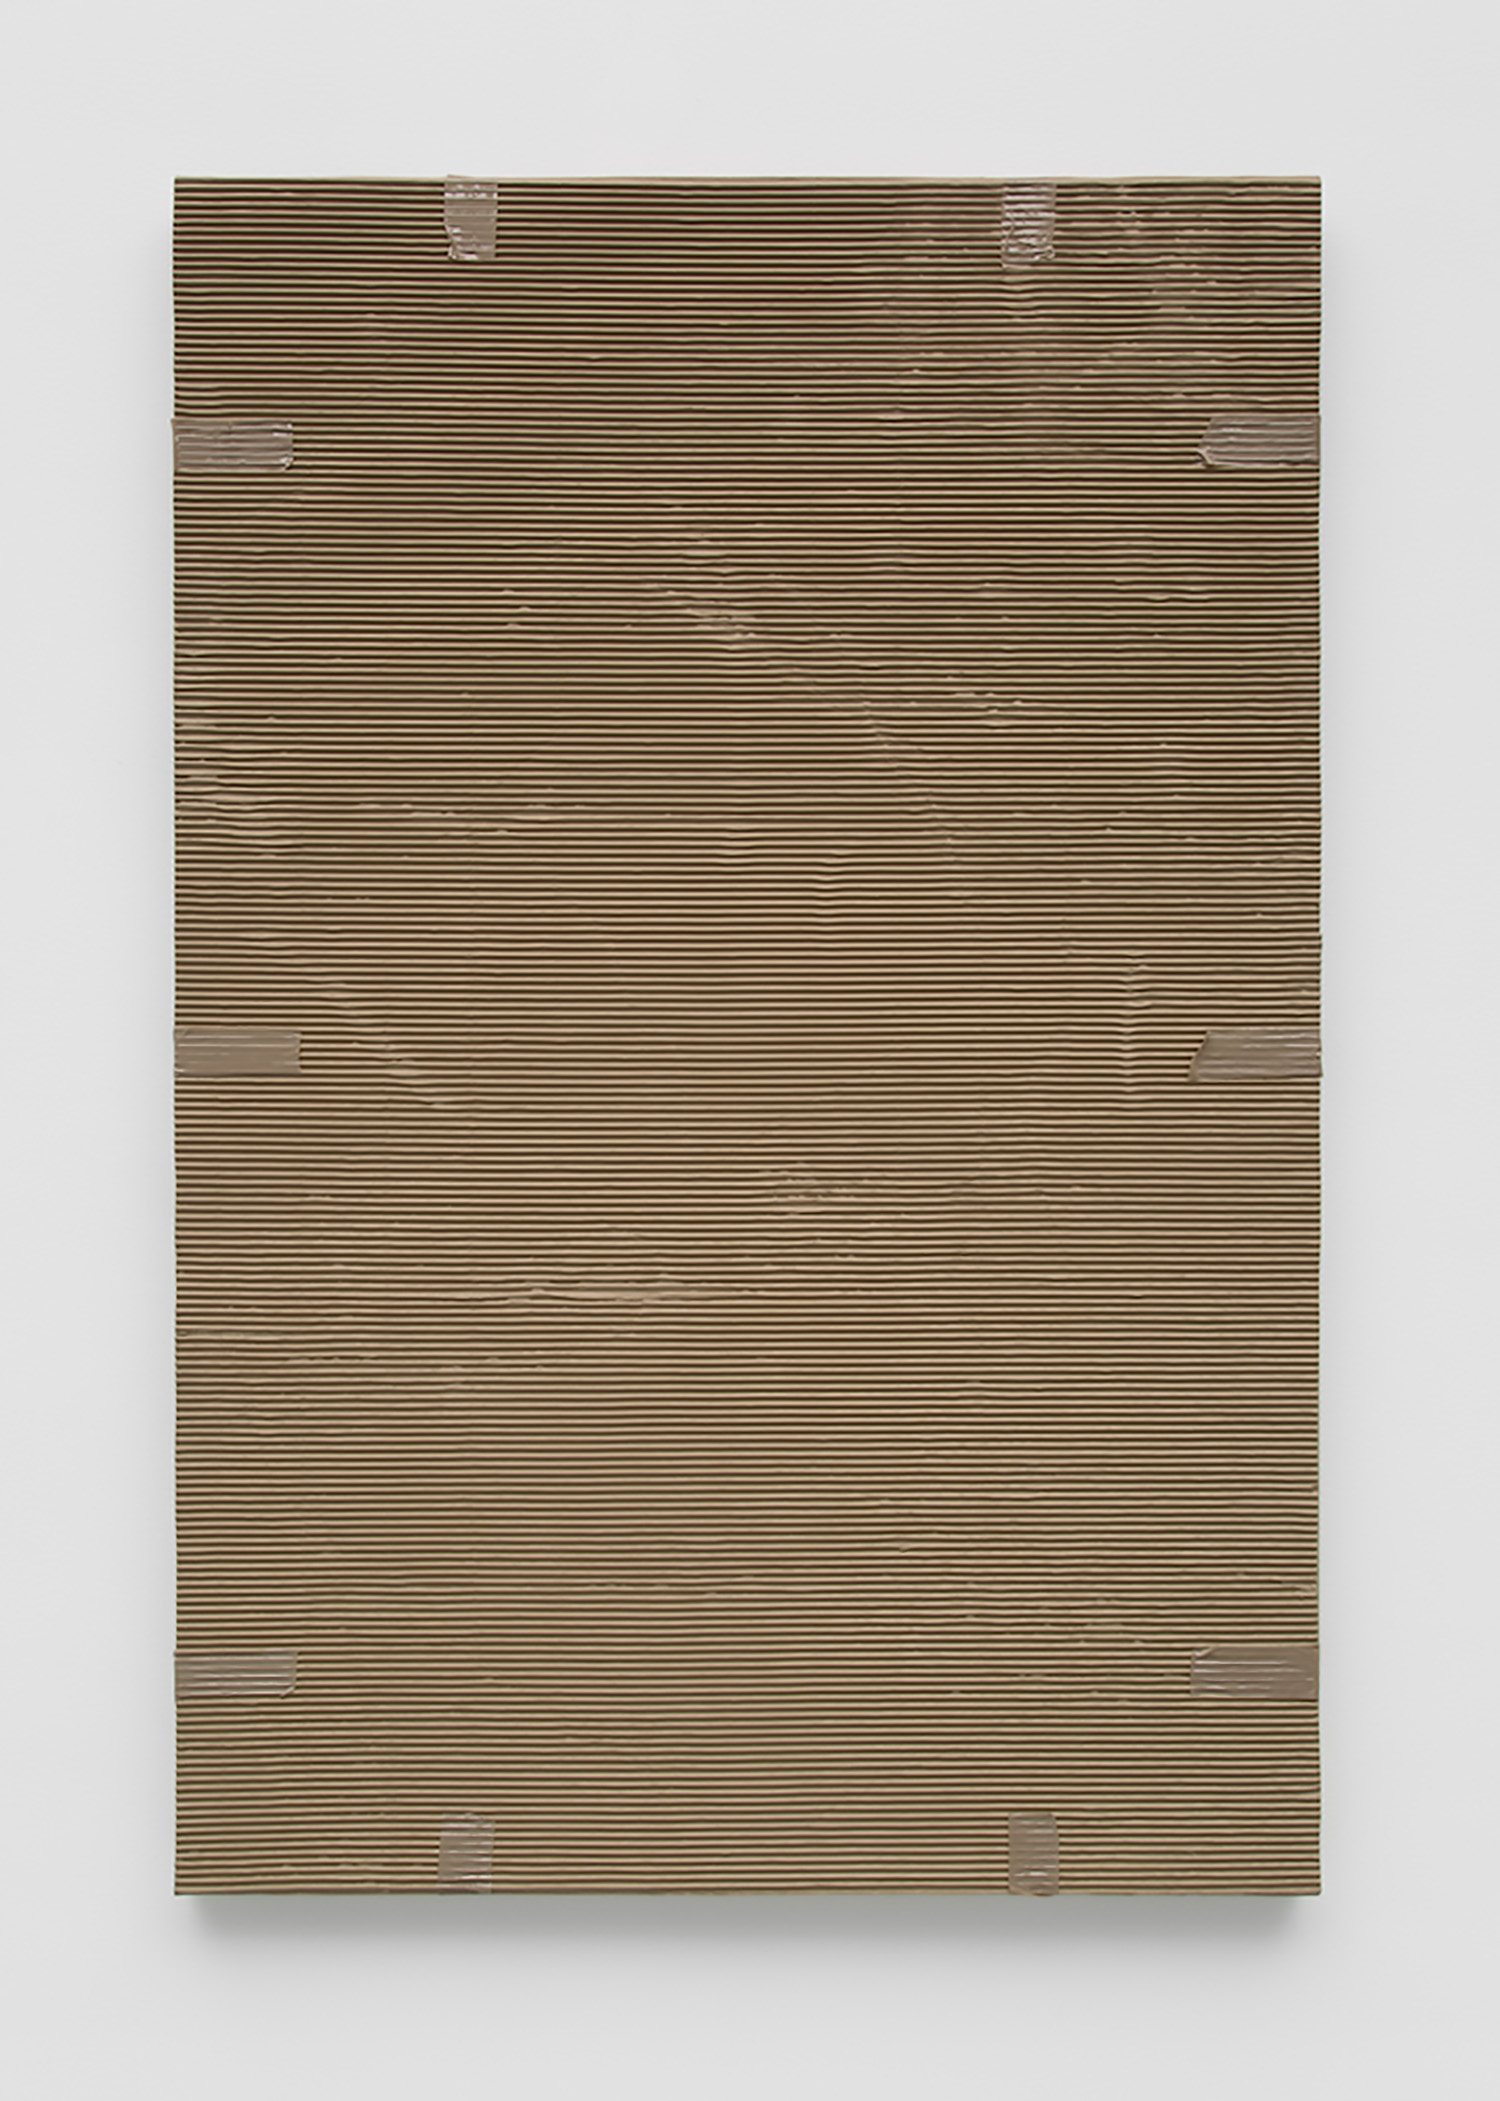 """Monochrome with Corrugated Cardboard, and Tan Packing Tape , 2016, Acrylic on linen, 60'' x 40'' x 1 ½"""""""